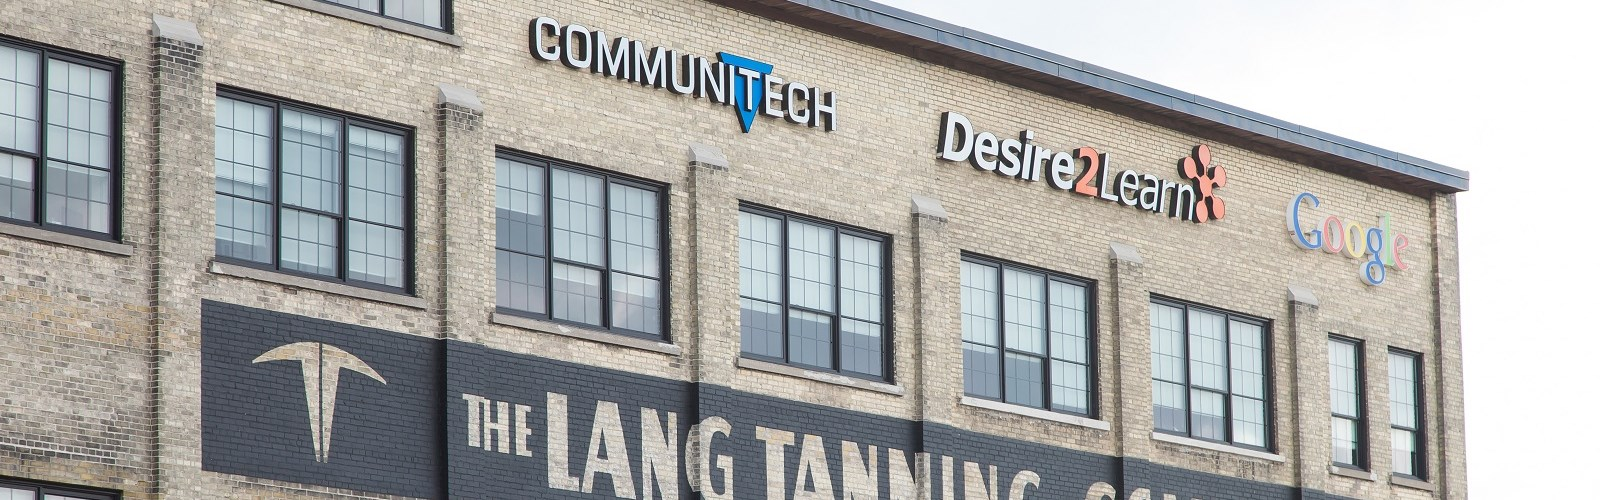 Communitech on a building